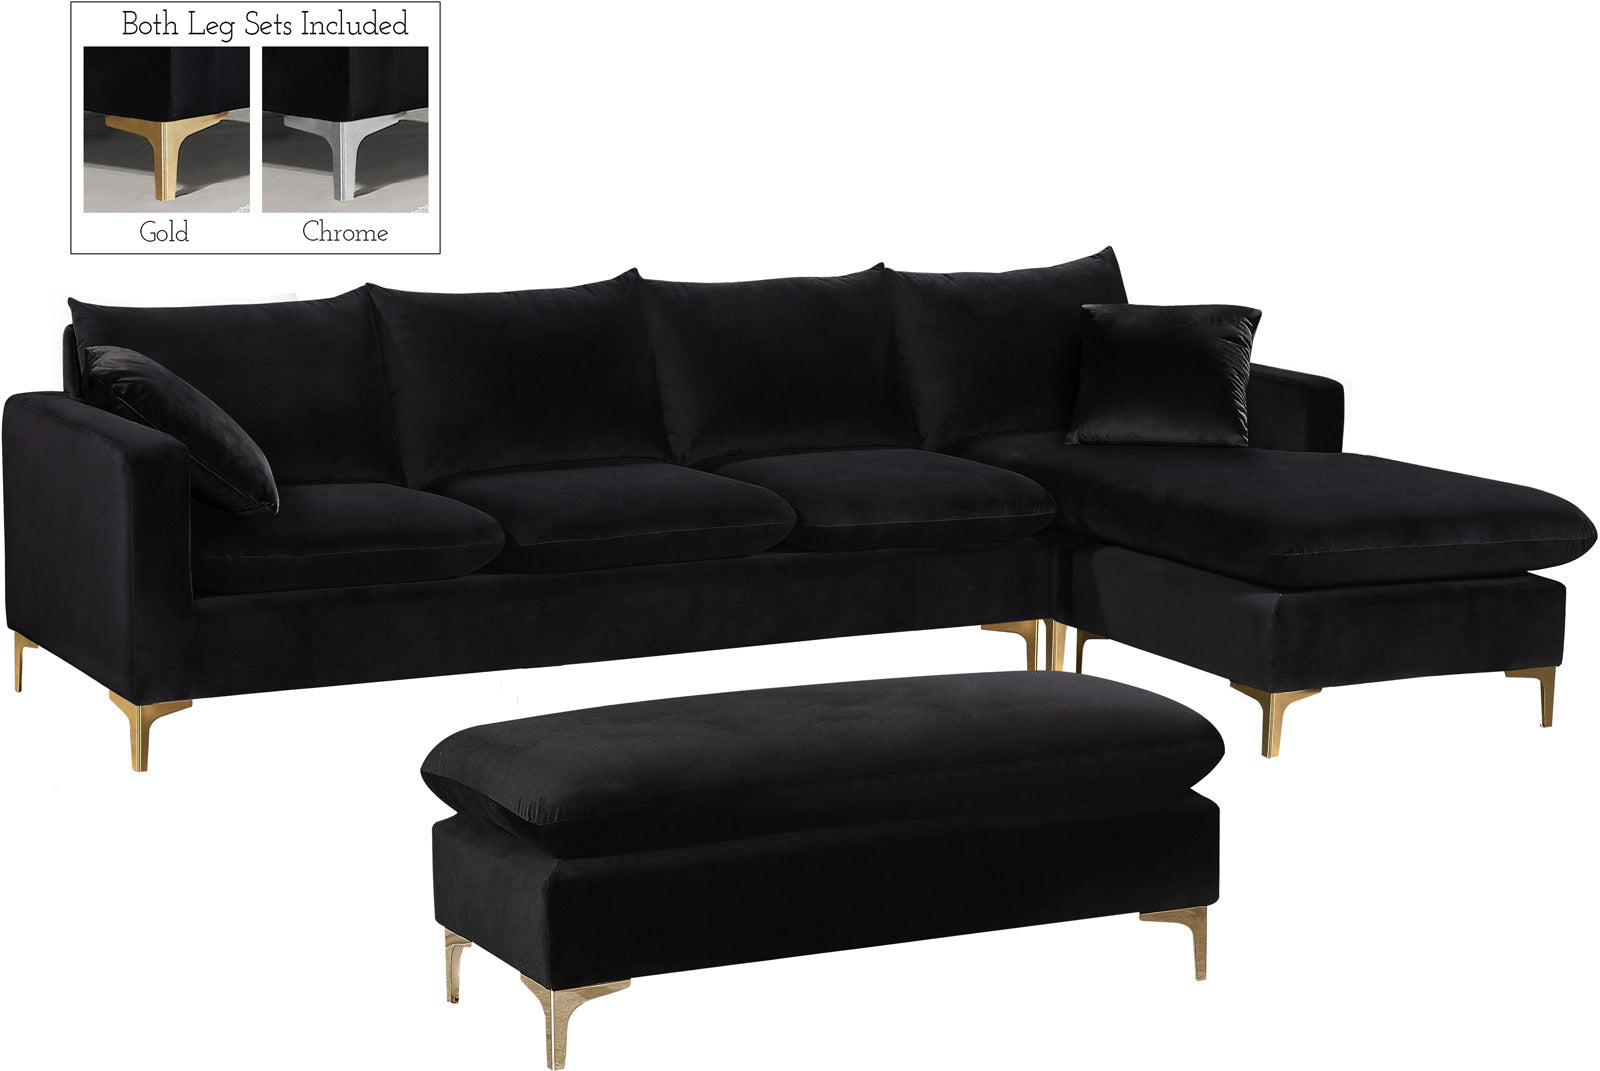 Sofas & Sectionals at Contemporary Furniture Warehouse